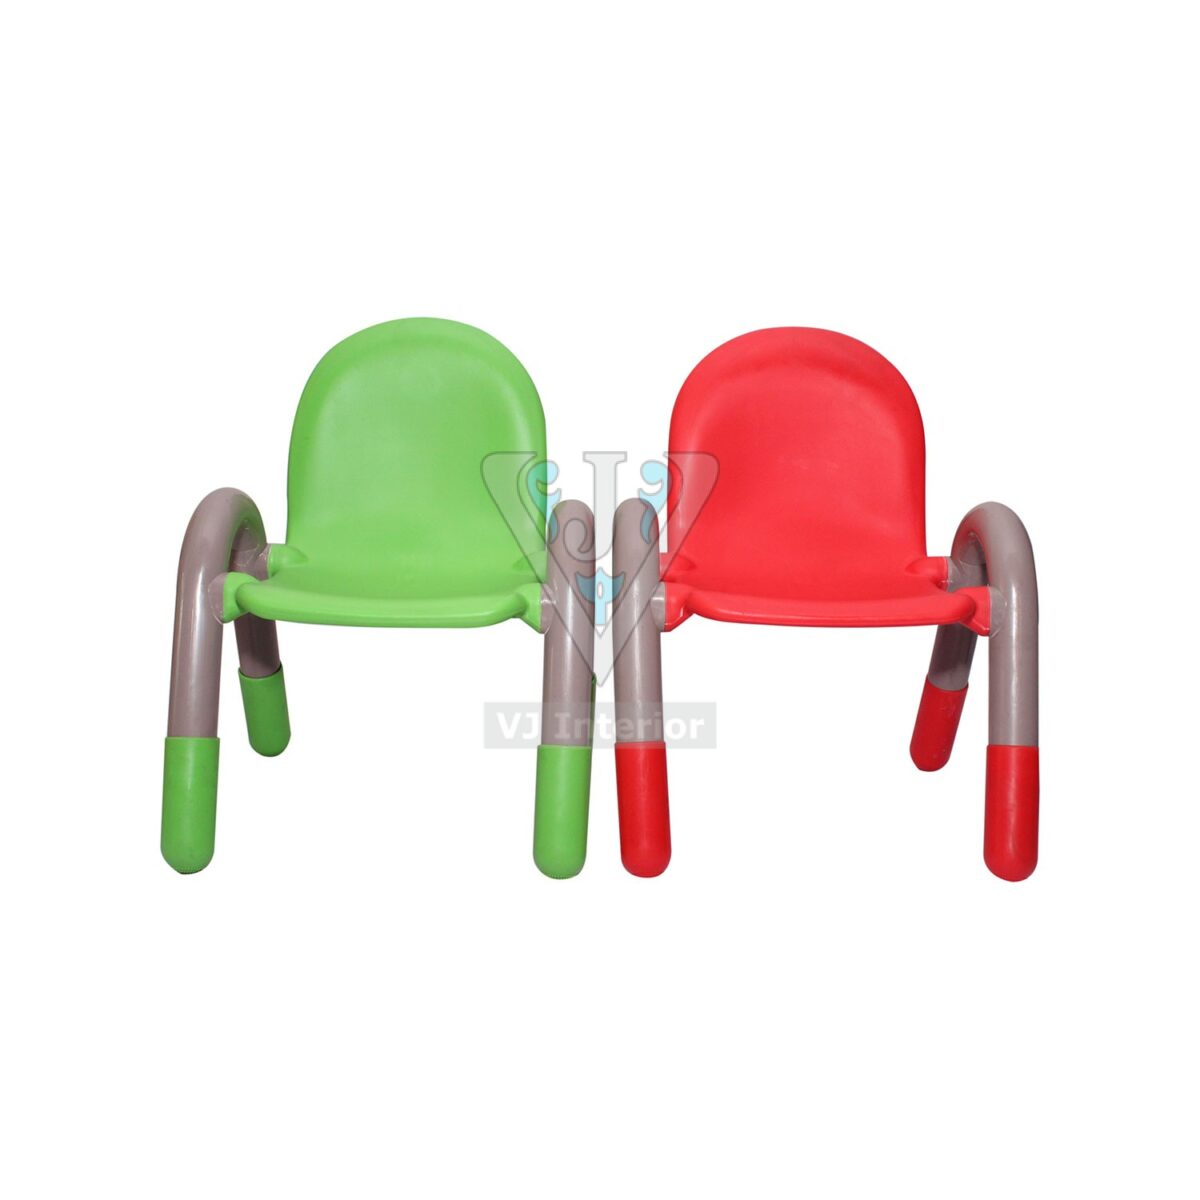 THE CHICO ENGINEERING PLASTIC KIDS CHAIR GREEN AND RED PAIR